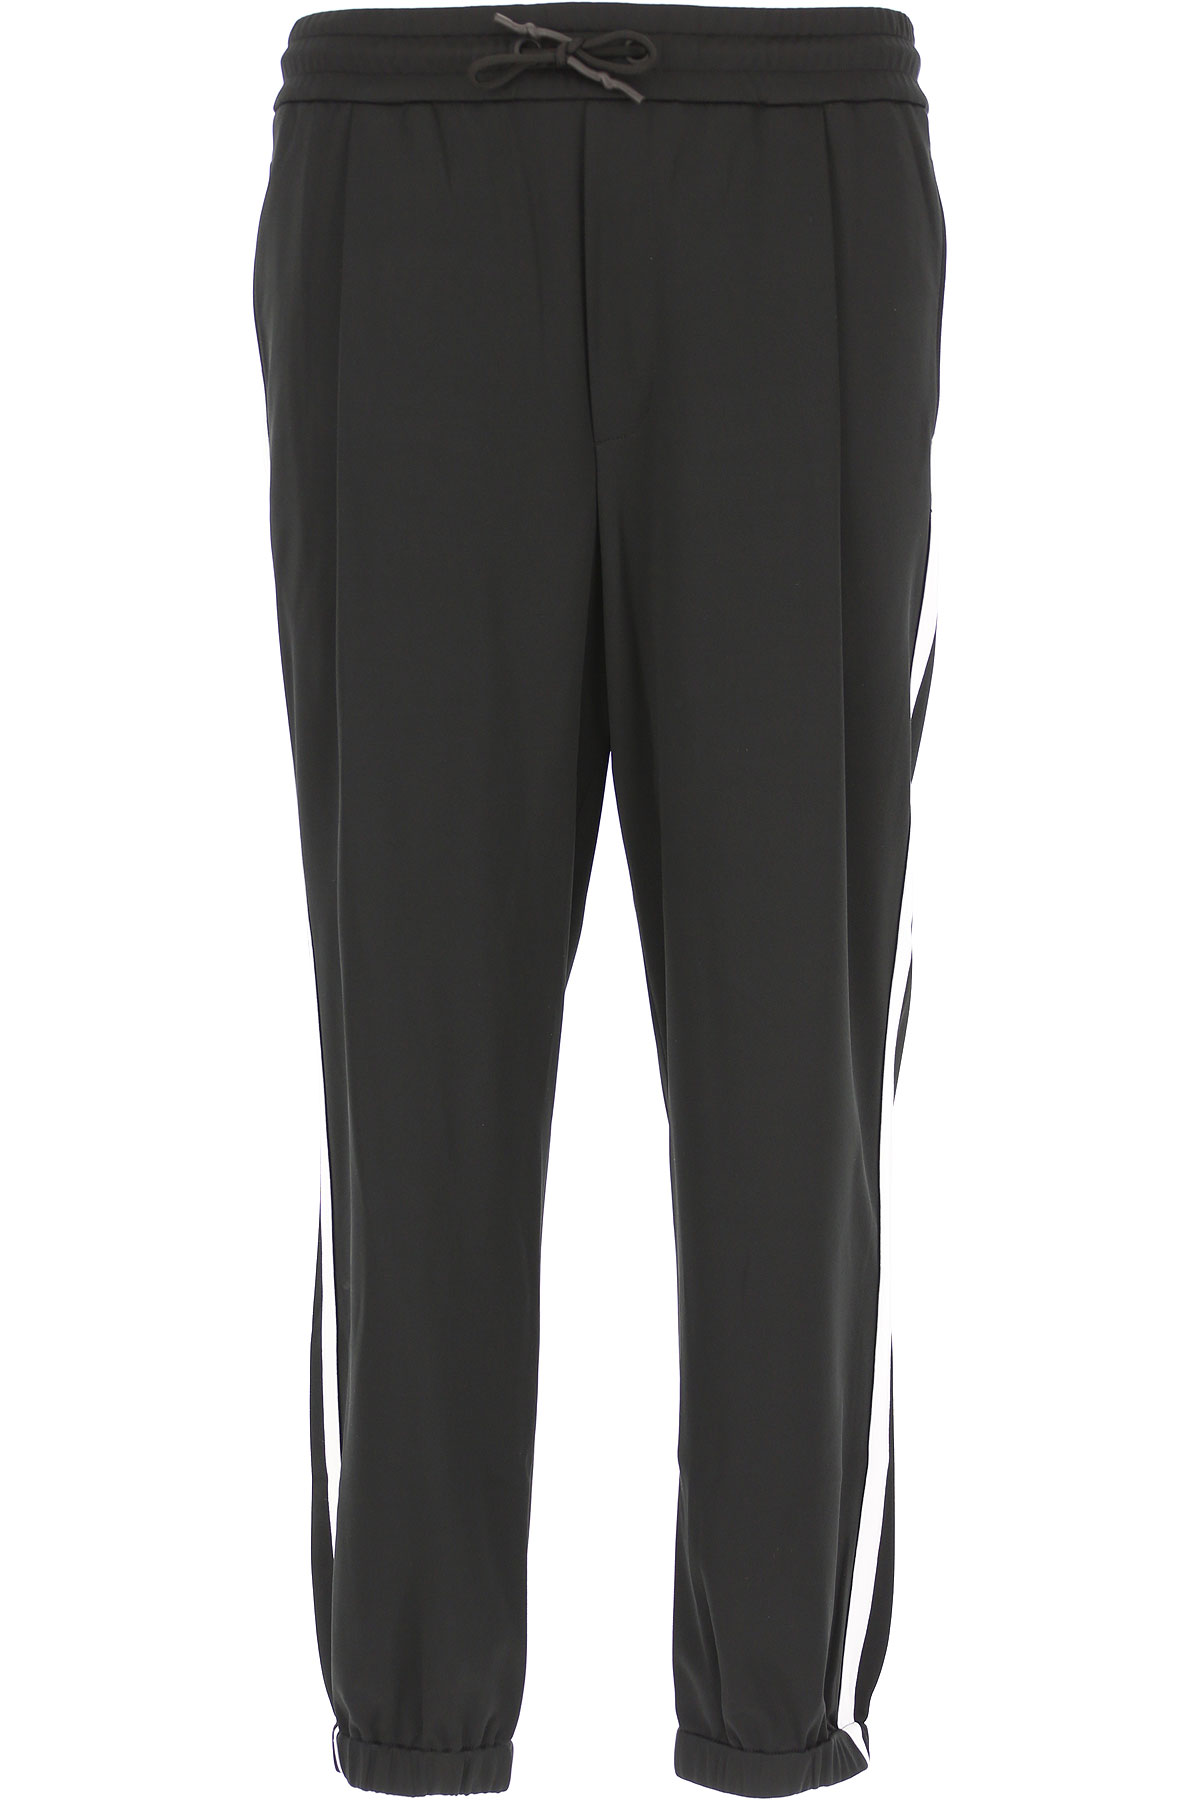 Alexander McQueen McQ Men's Sportswear for Gym Workouts and Running On Sale in Outlet, Black, polyester, 2019, L M S XL